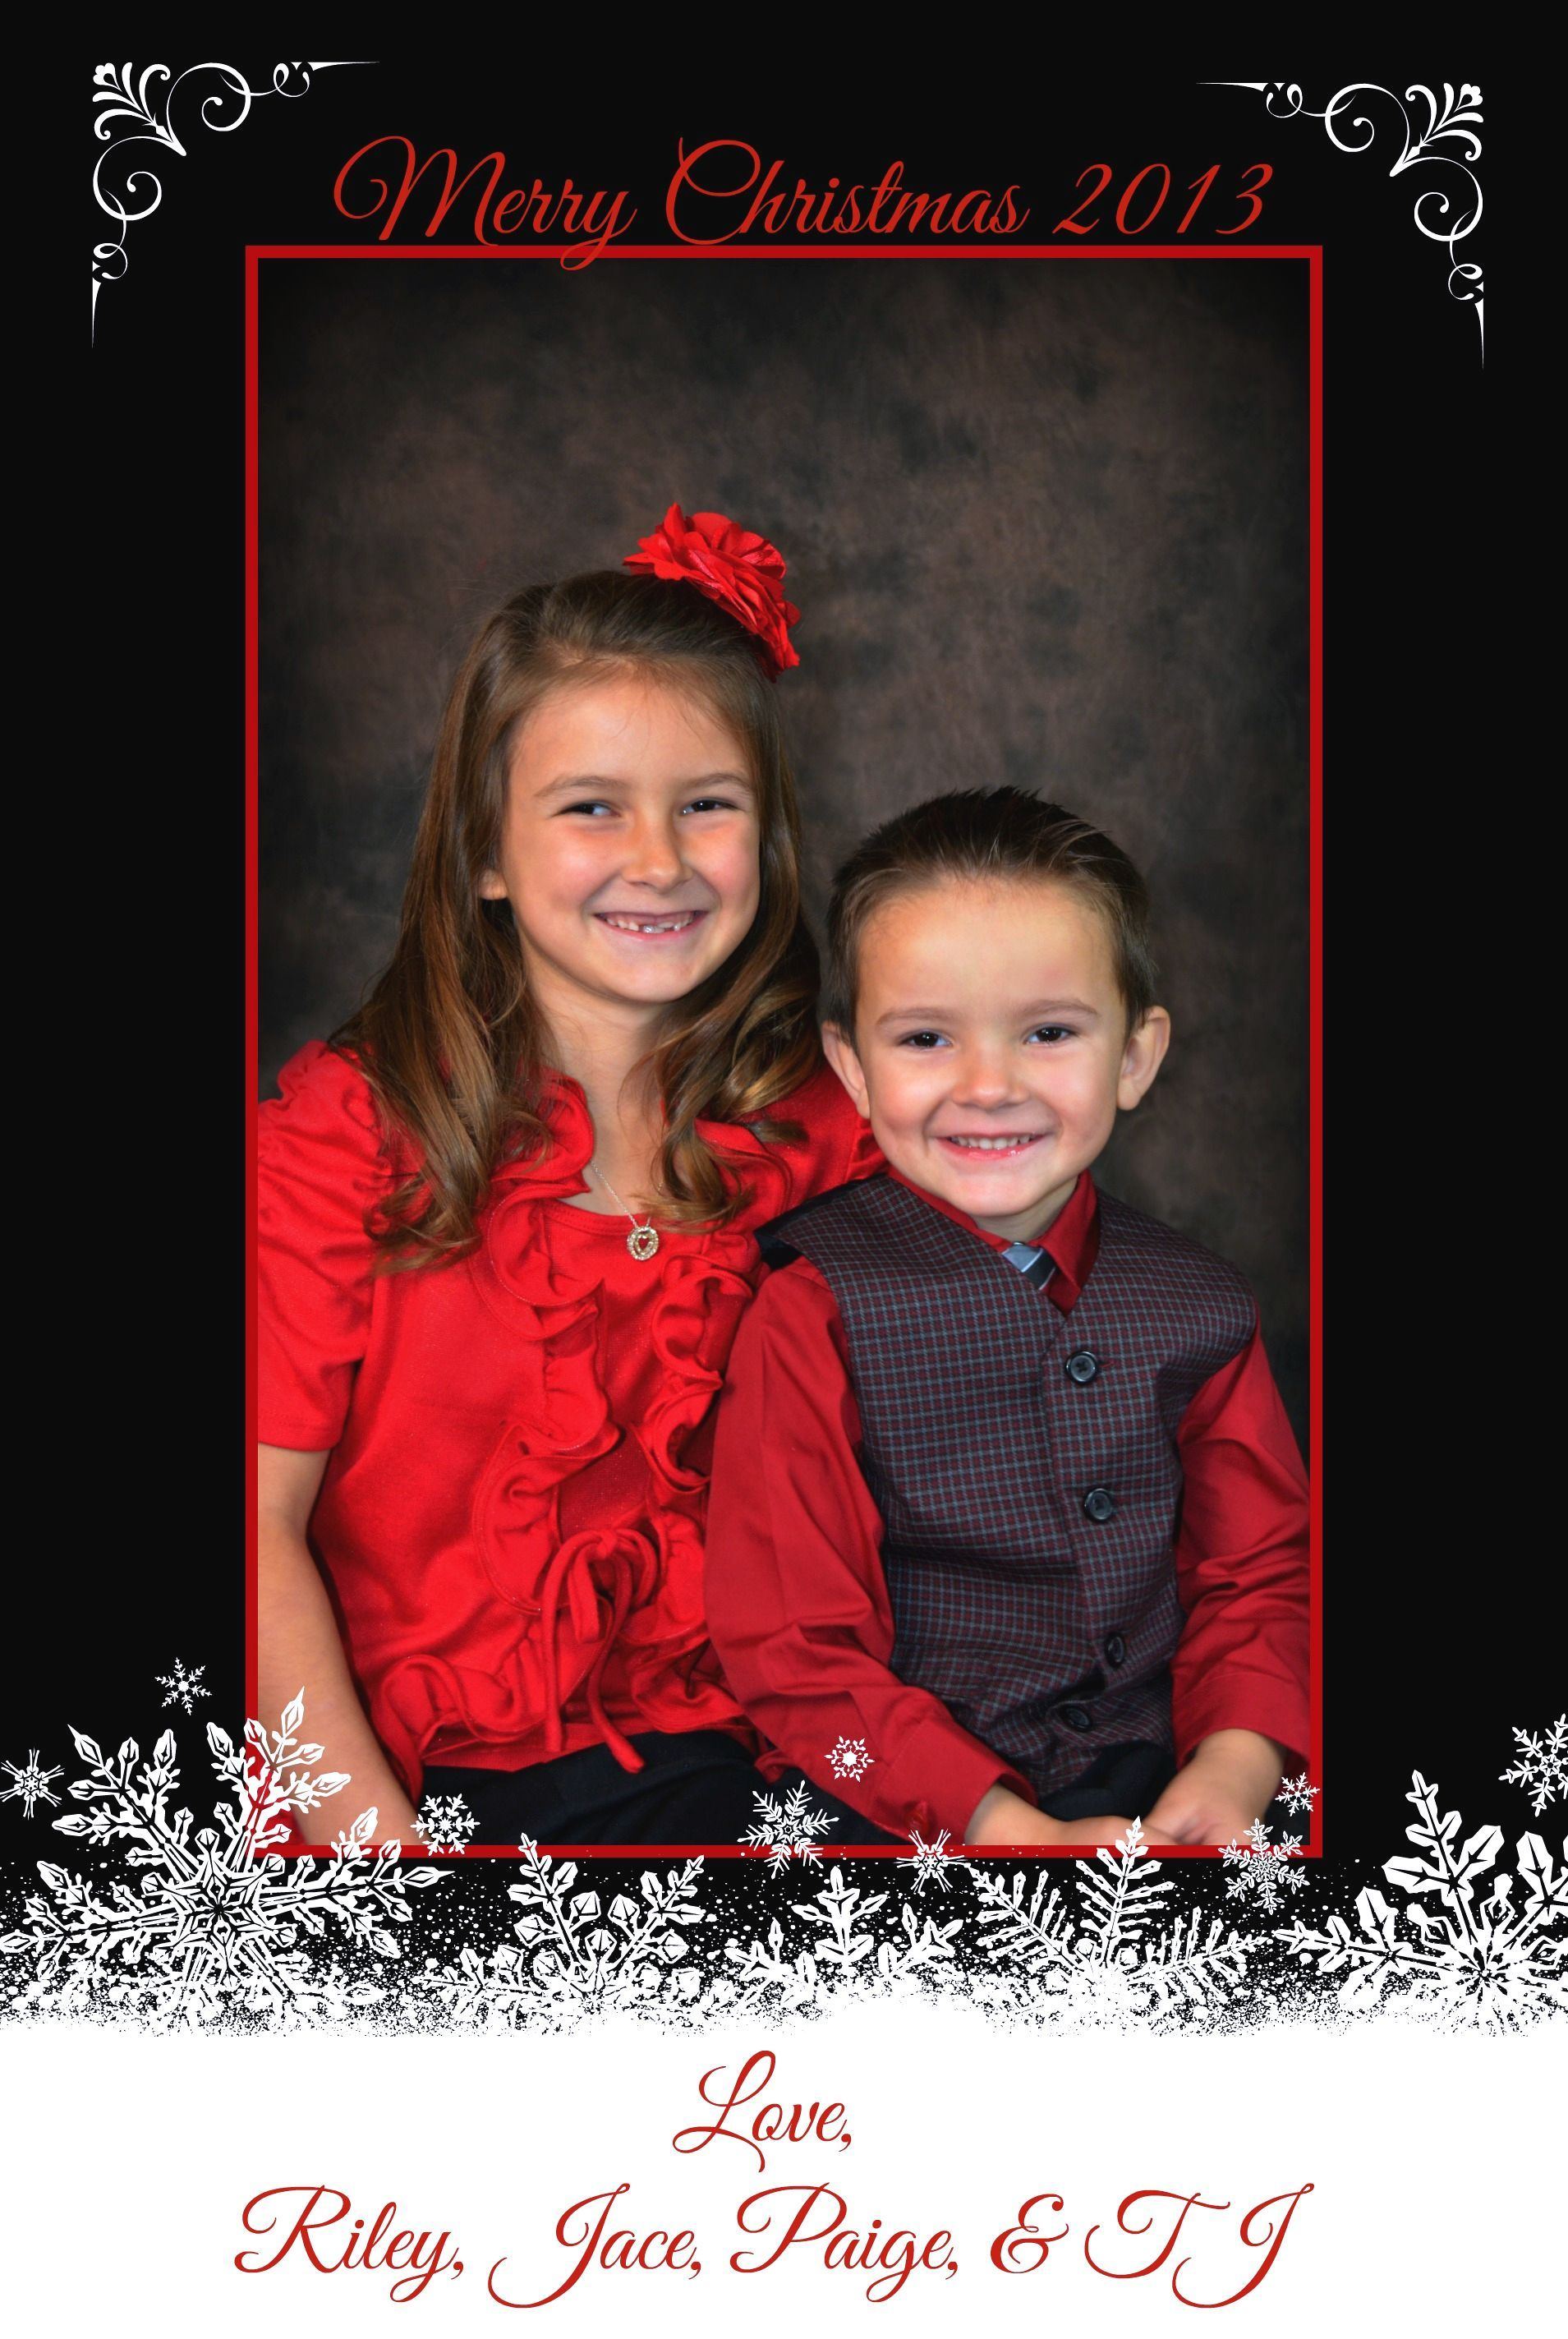 Our Christmas Cards -2013